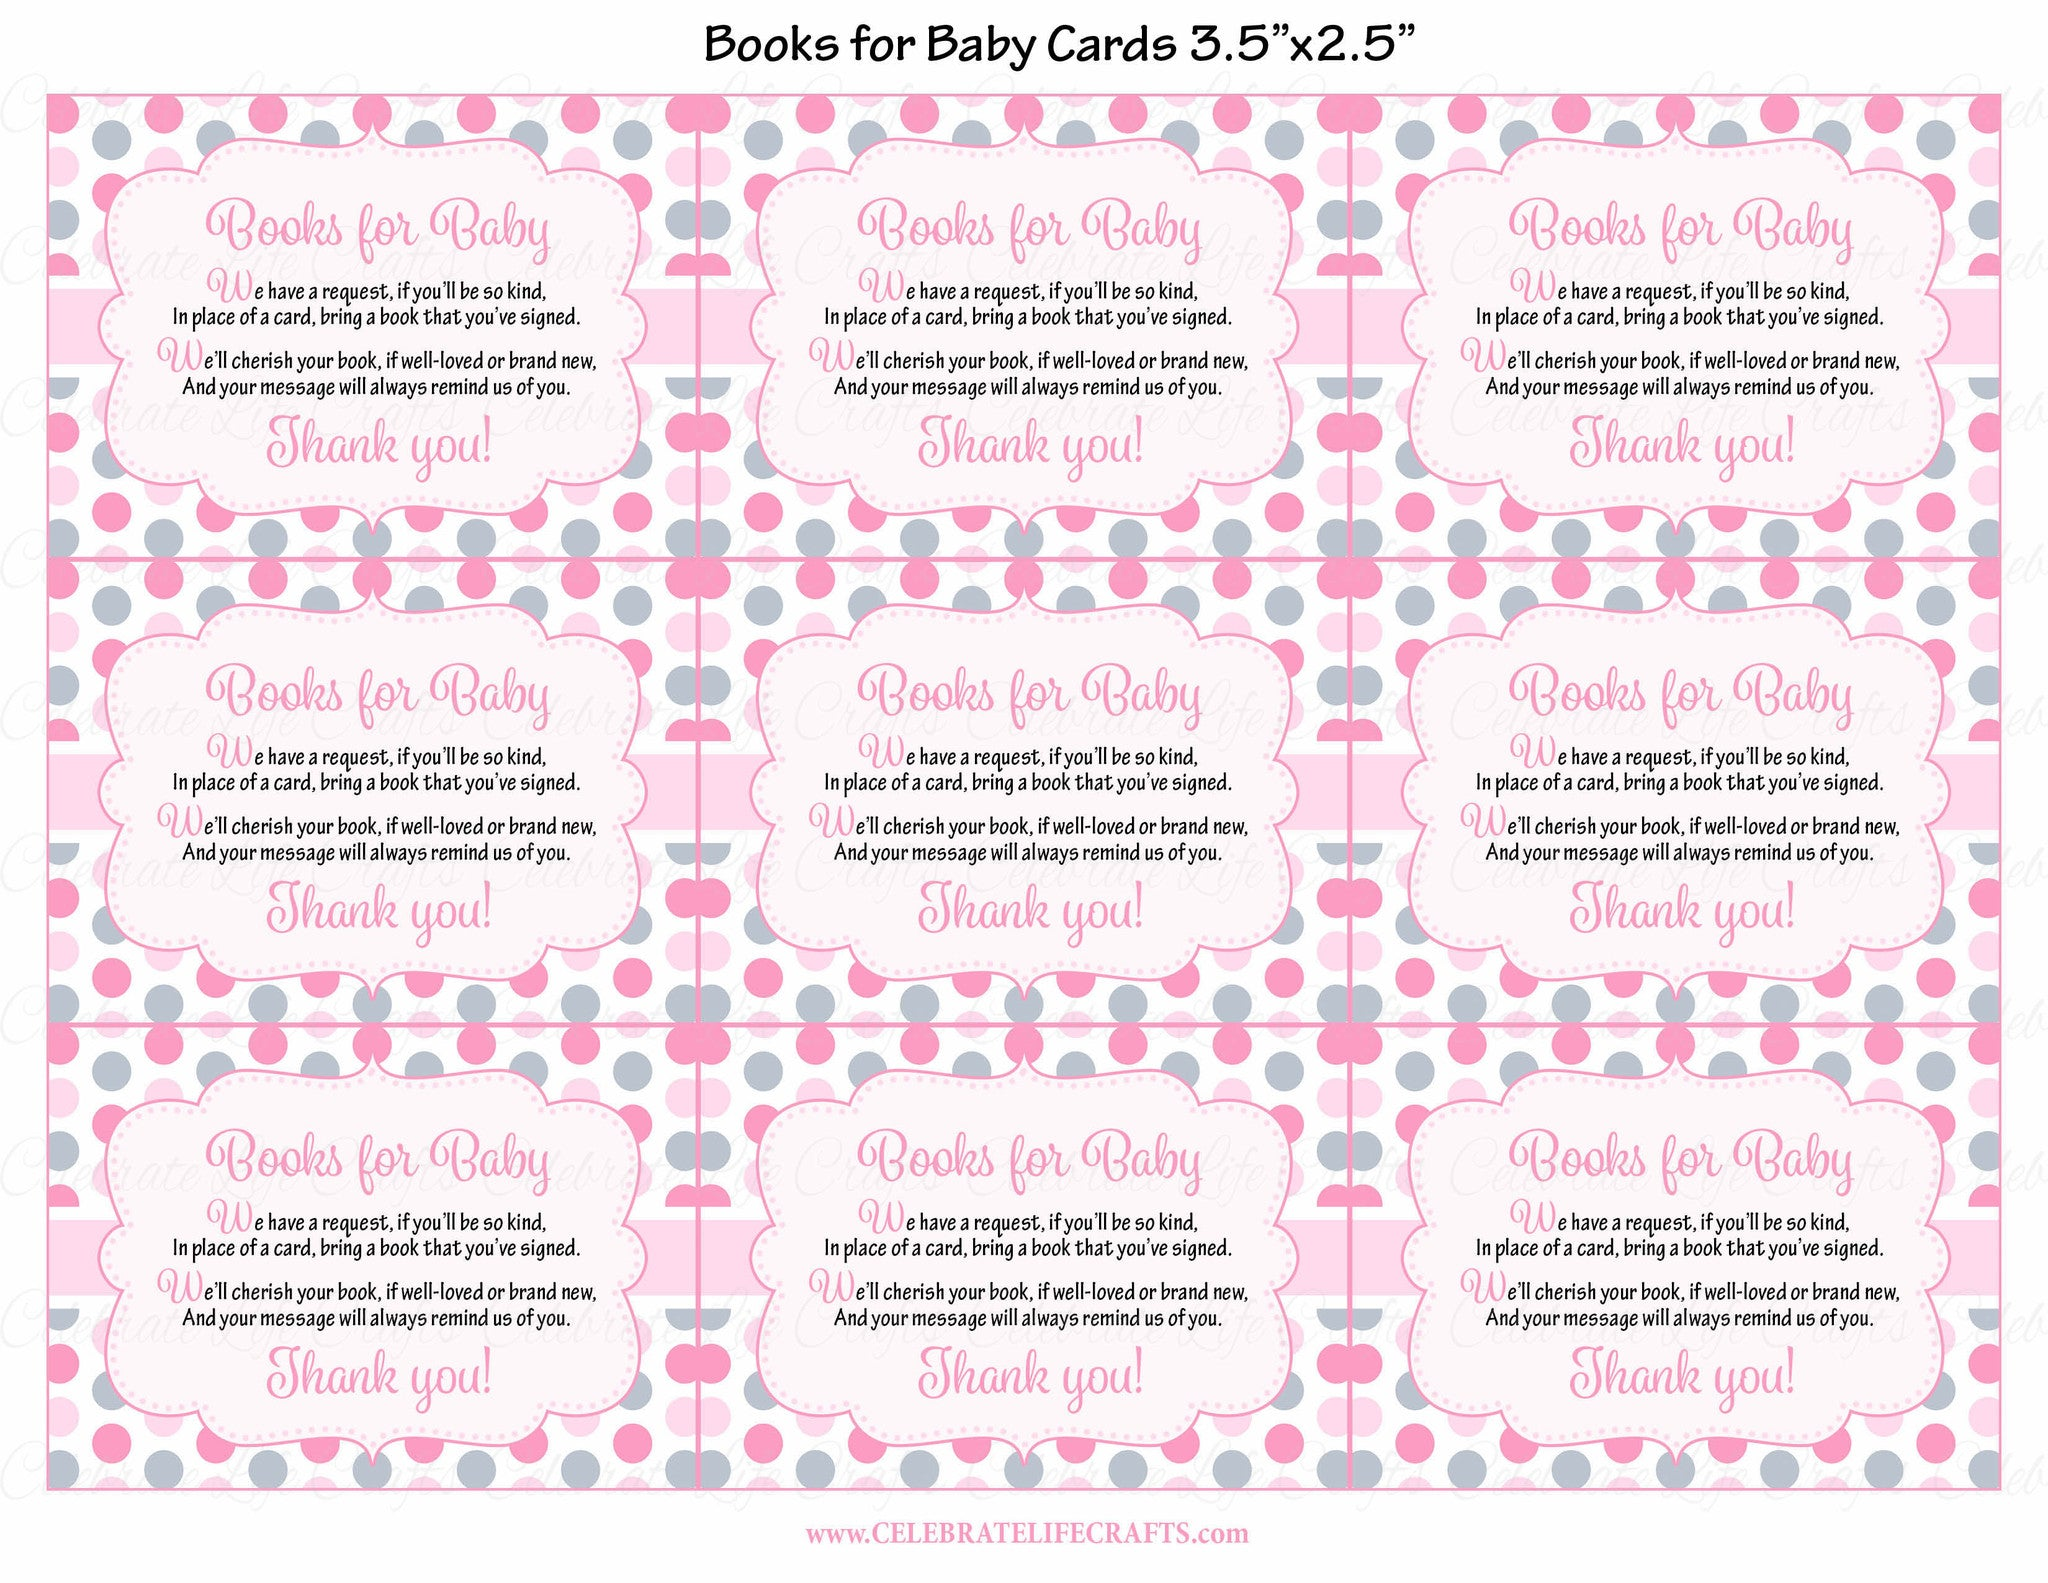 Books for Baby Invitation Inserts for Baby Shower - Whale Baby ...